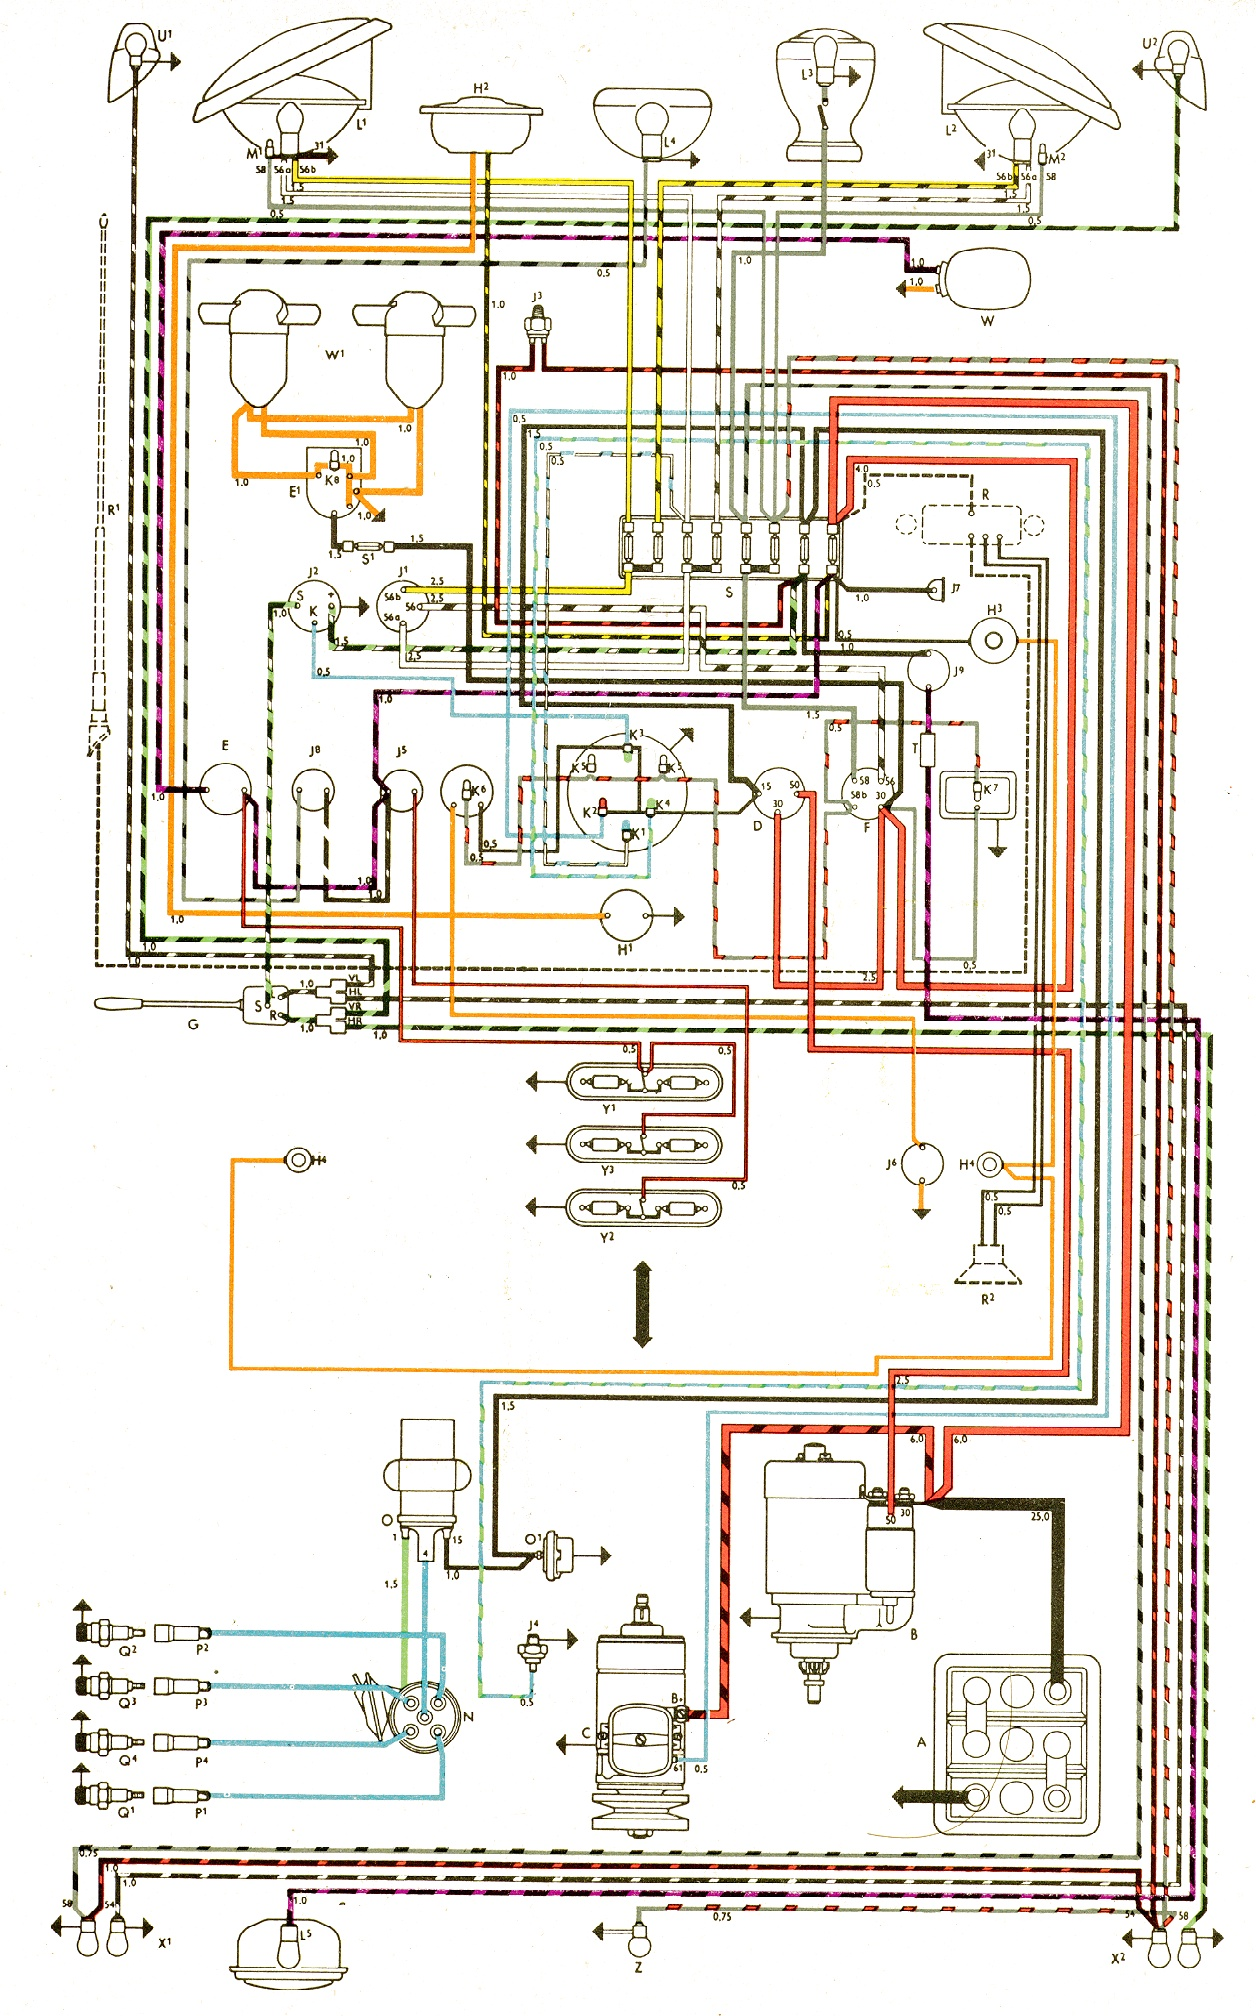 bus 62 bus wiring diagram vw wiring harness diagram \u2022 wiring diagrams j girardin bus wiring diagrams at crackthecode.co